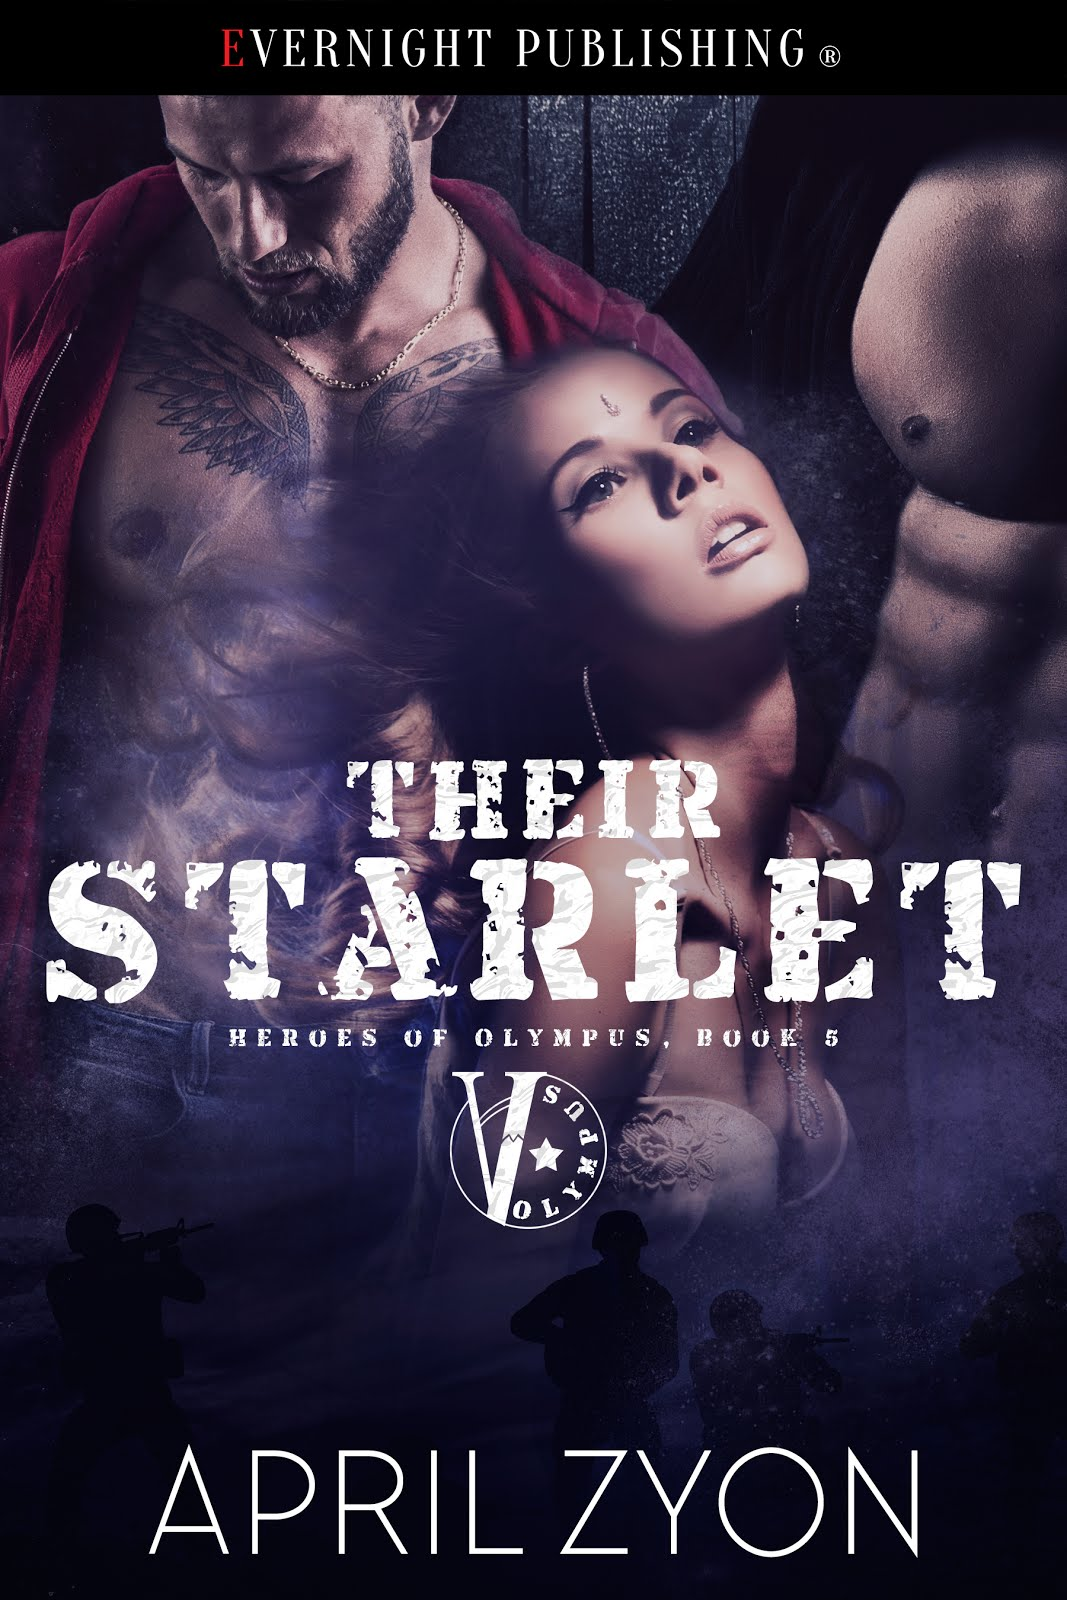 Their Starlet, Heroes of Olympus book 5